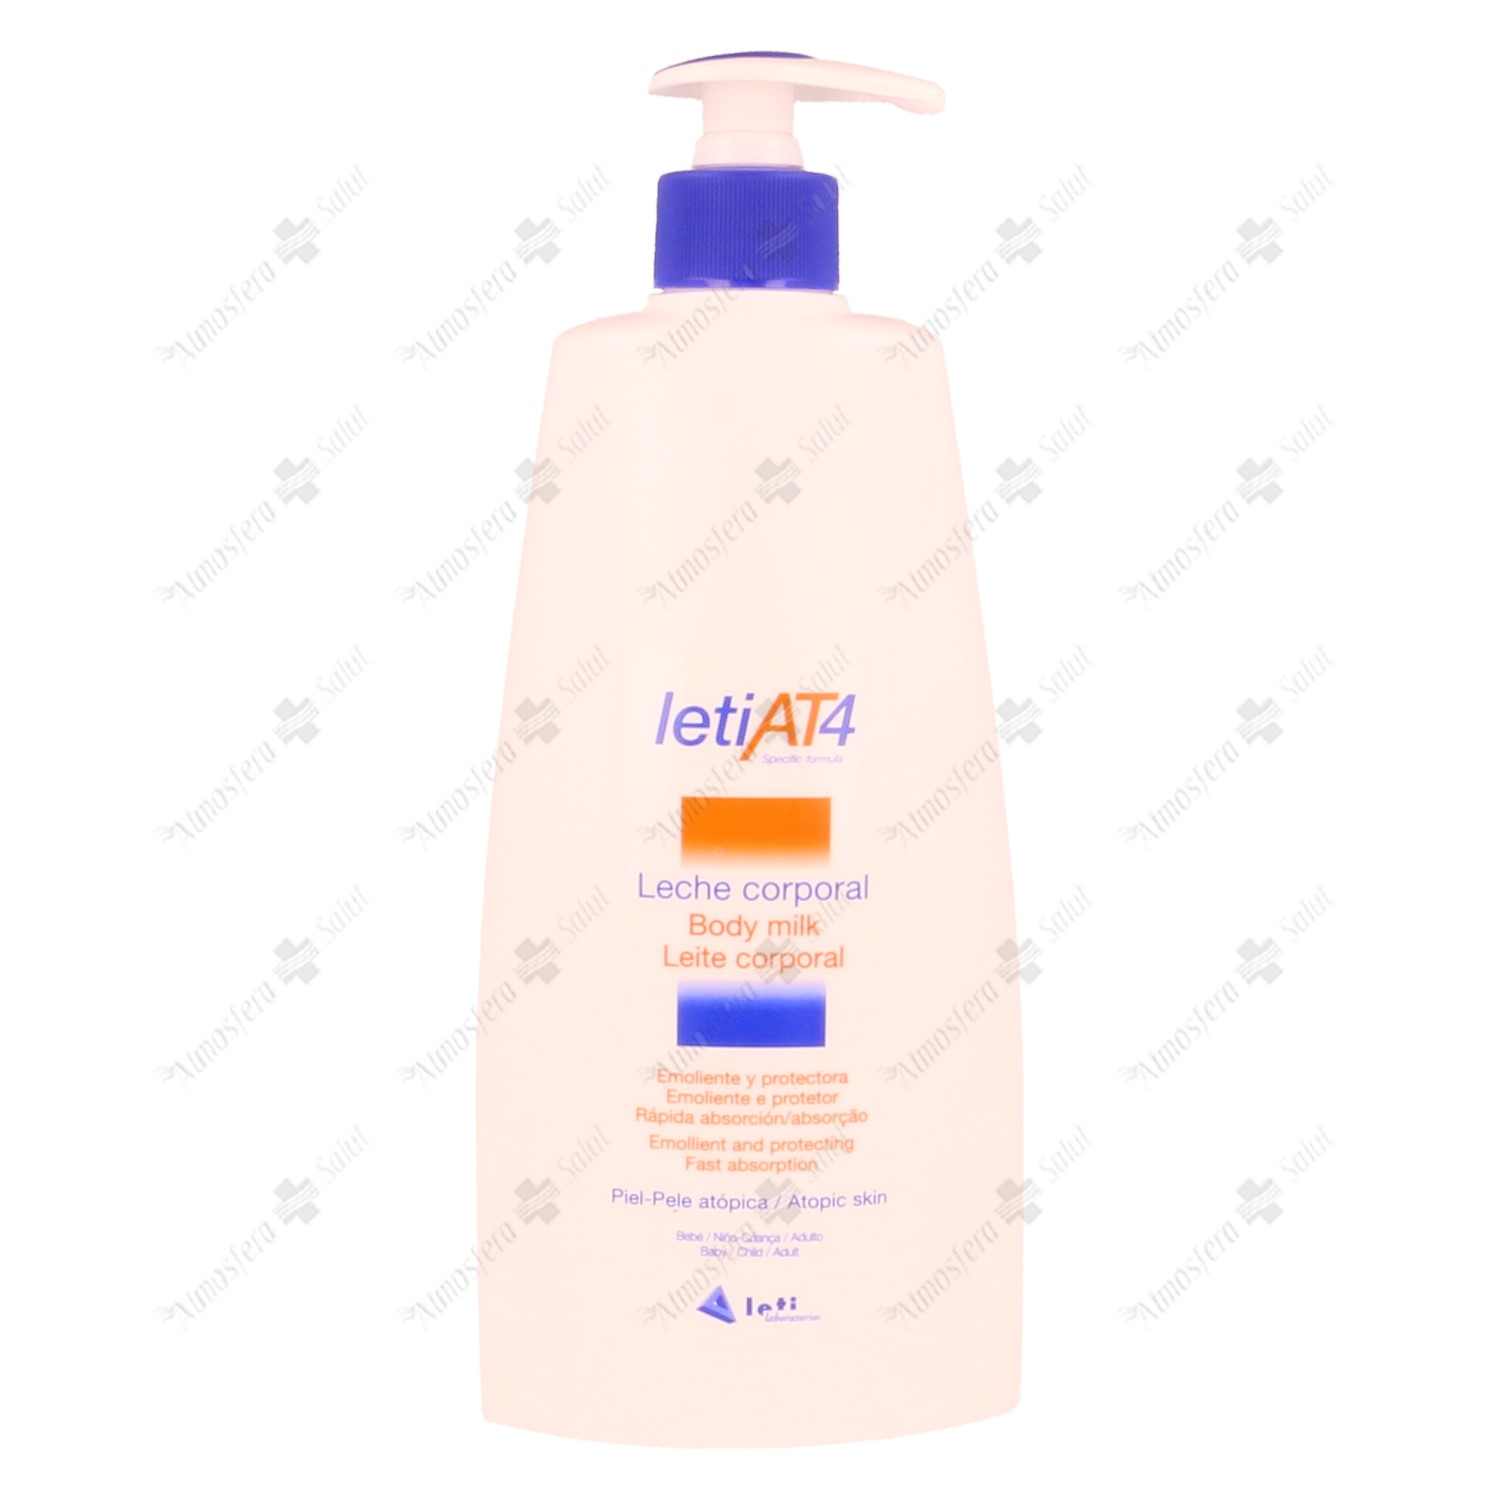 LETI AT-4 LECHE CORPORAL 500 ML